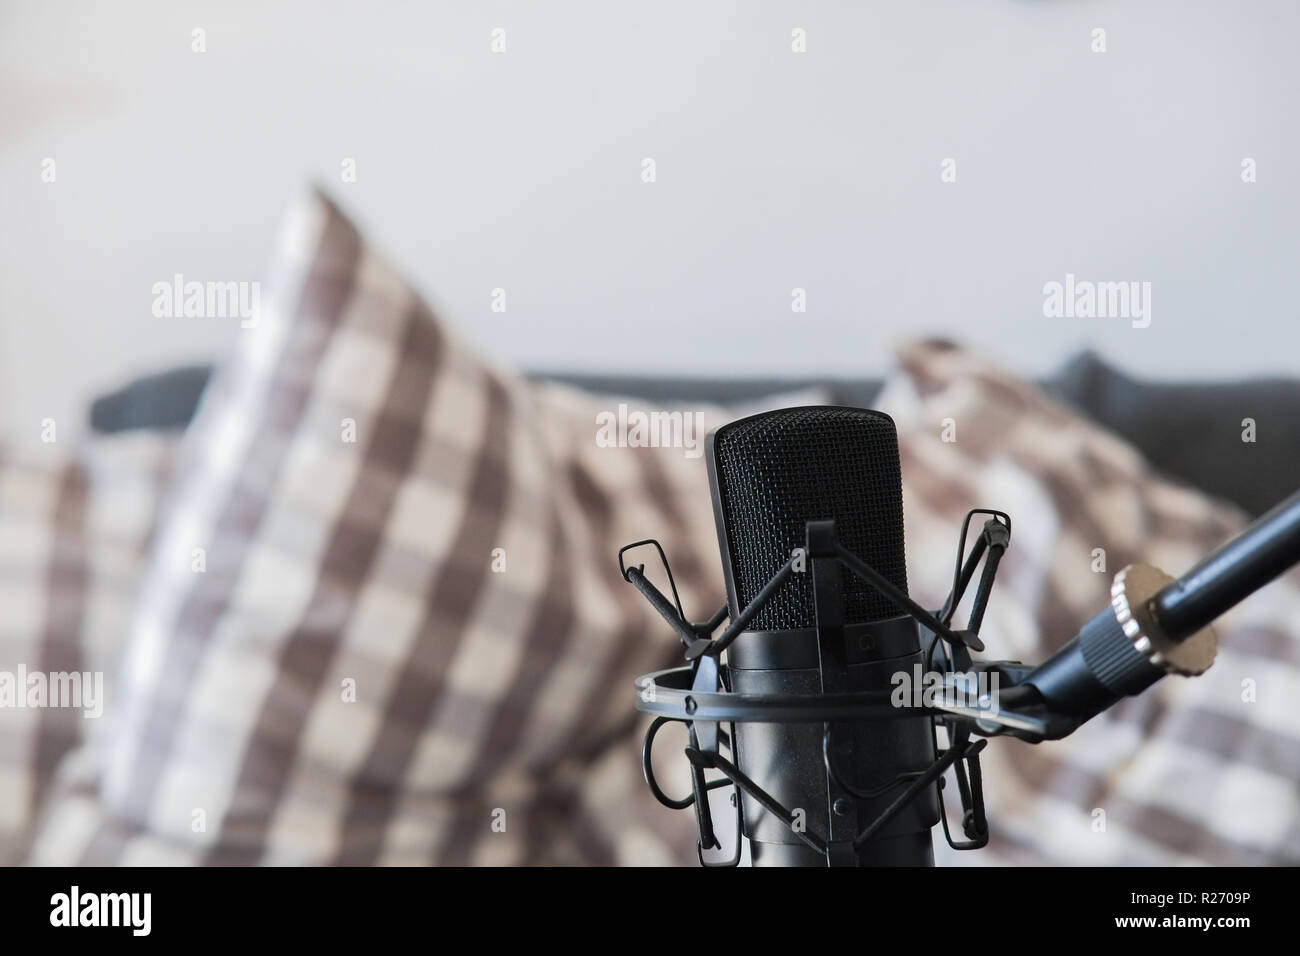 Condenser microphone on microphone stand with sofa in background Stock Photo